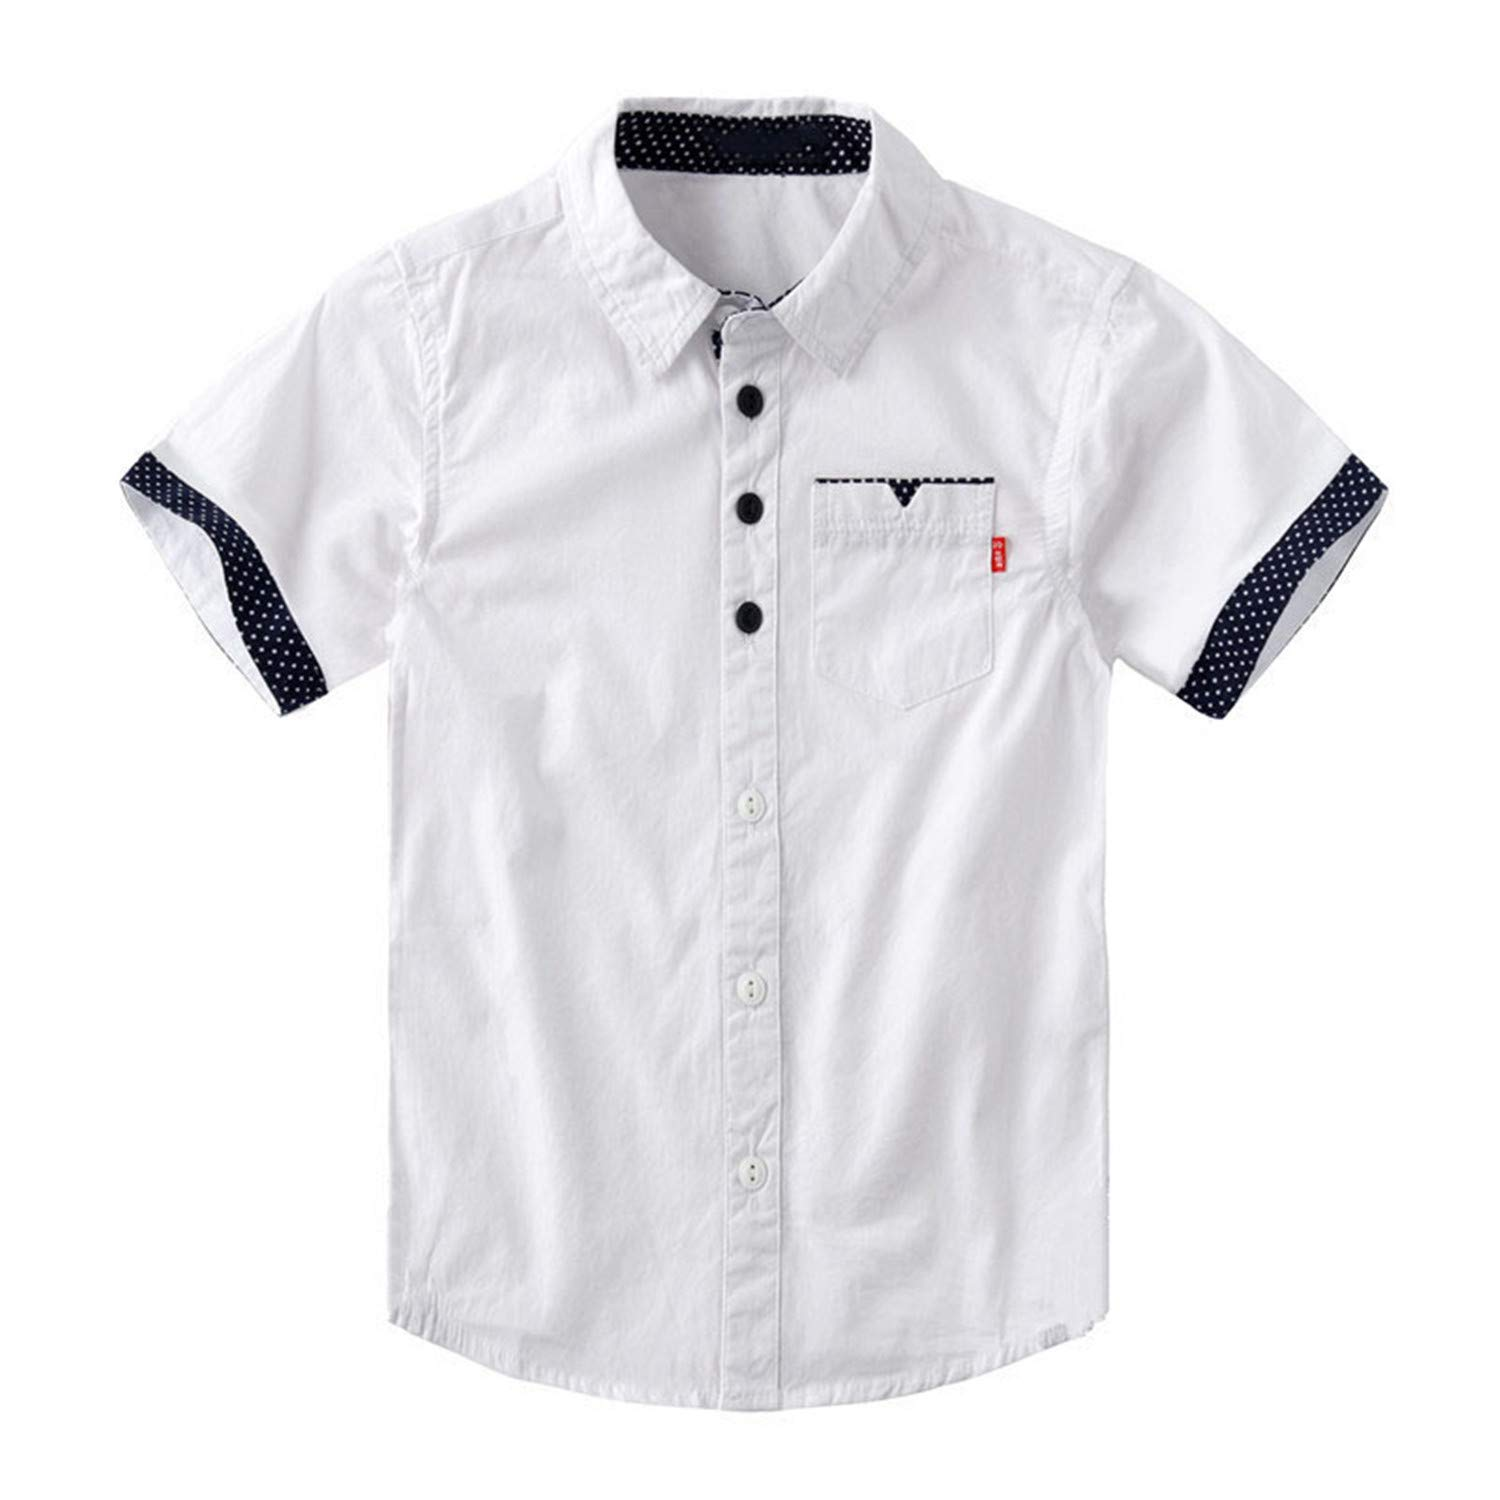 Aancy-Children School Shirts Casual Solid Cotton Short-Sleeved Boys Shirts for 4-12 Years Students Wear